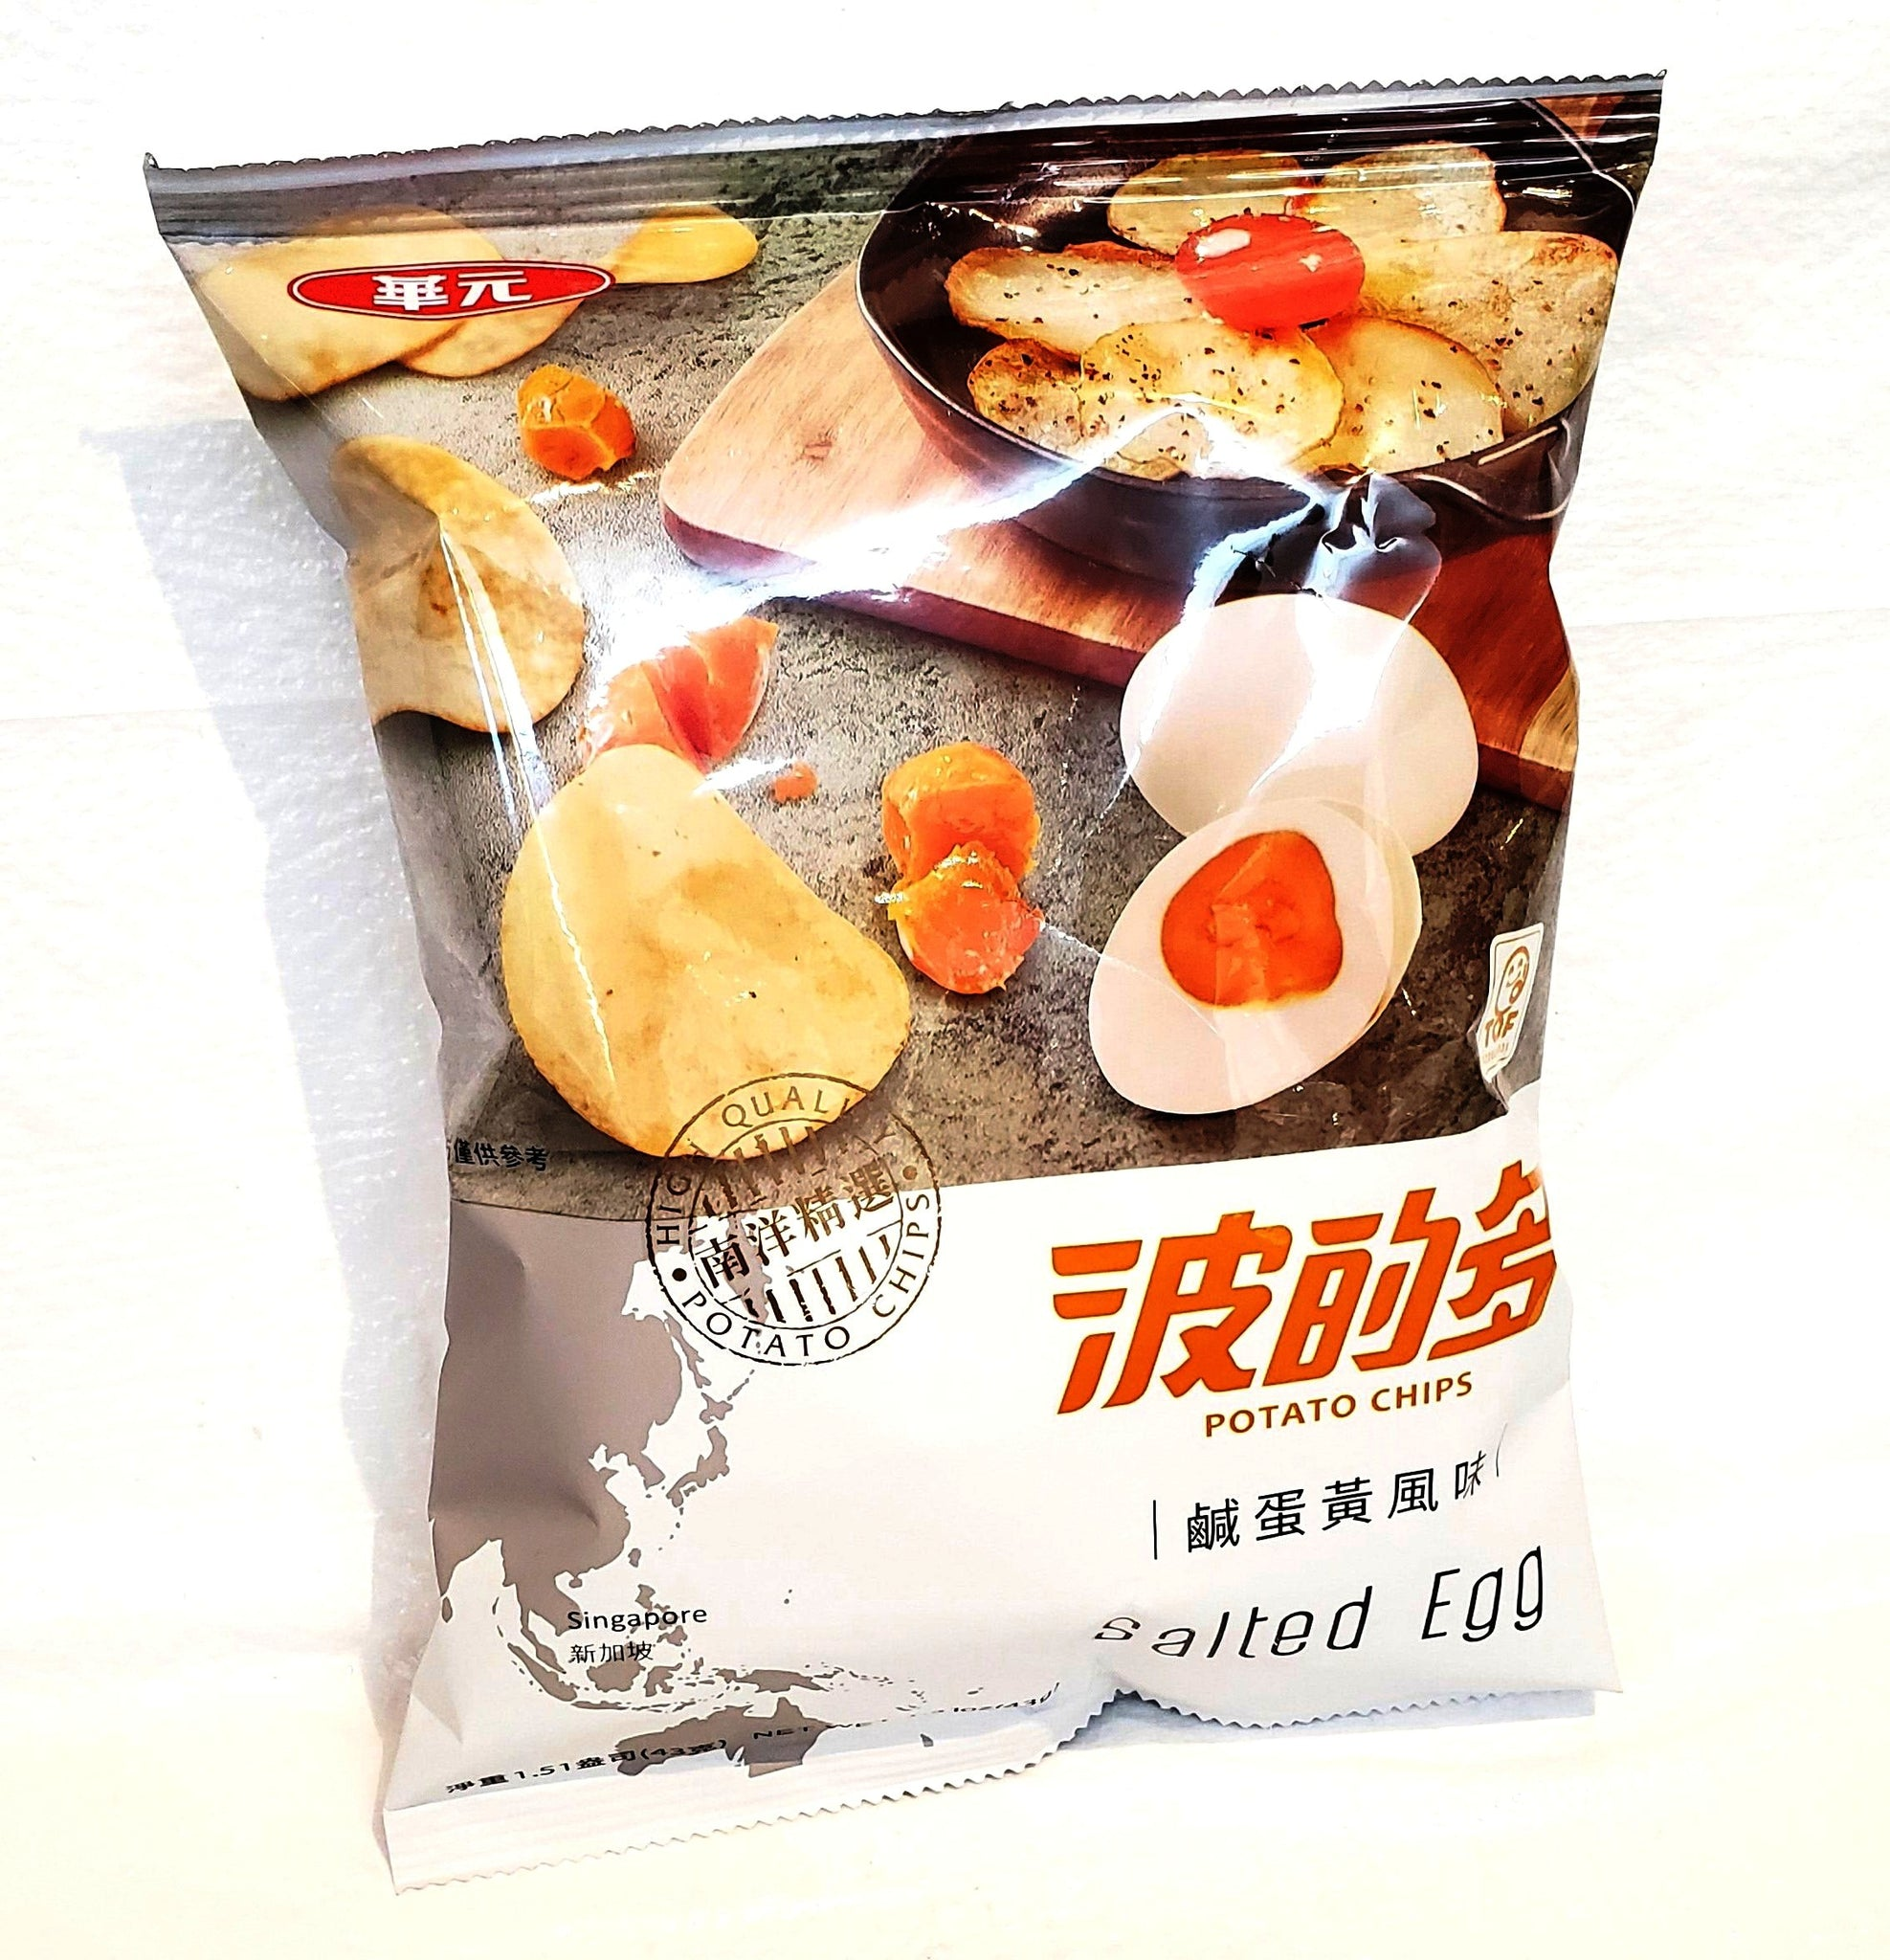 Taiwan salted egg potato chips 台灣波的多咸蛋黃薯片